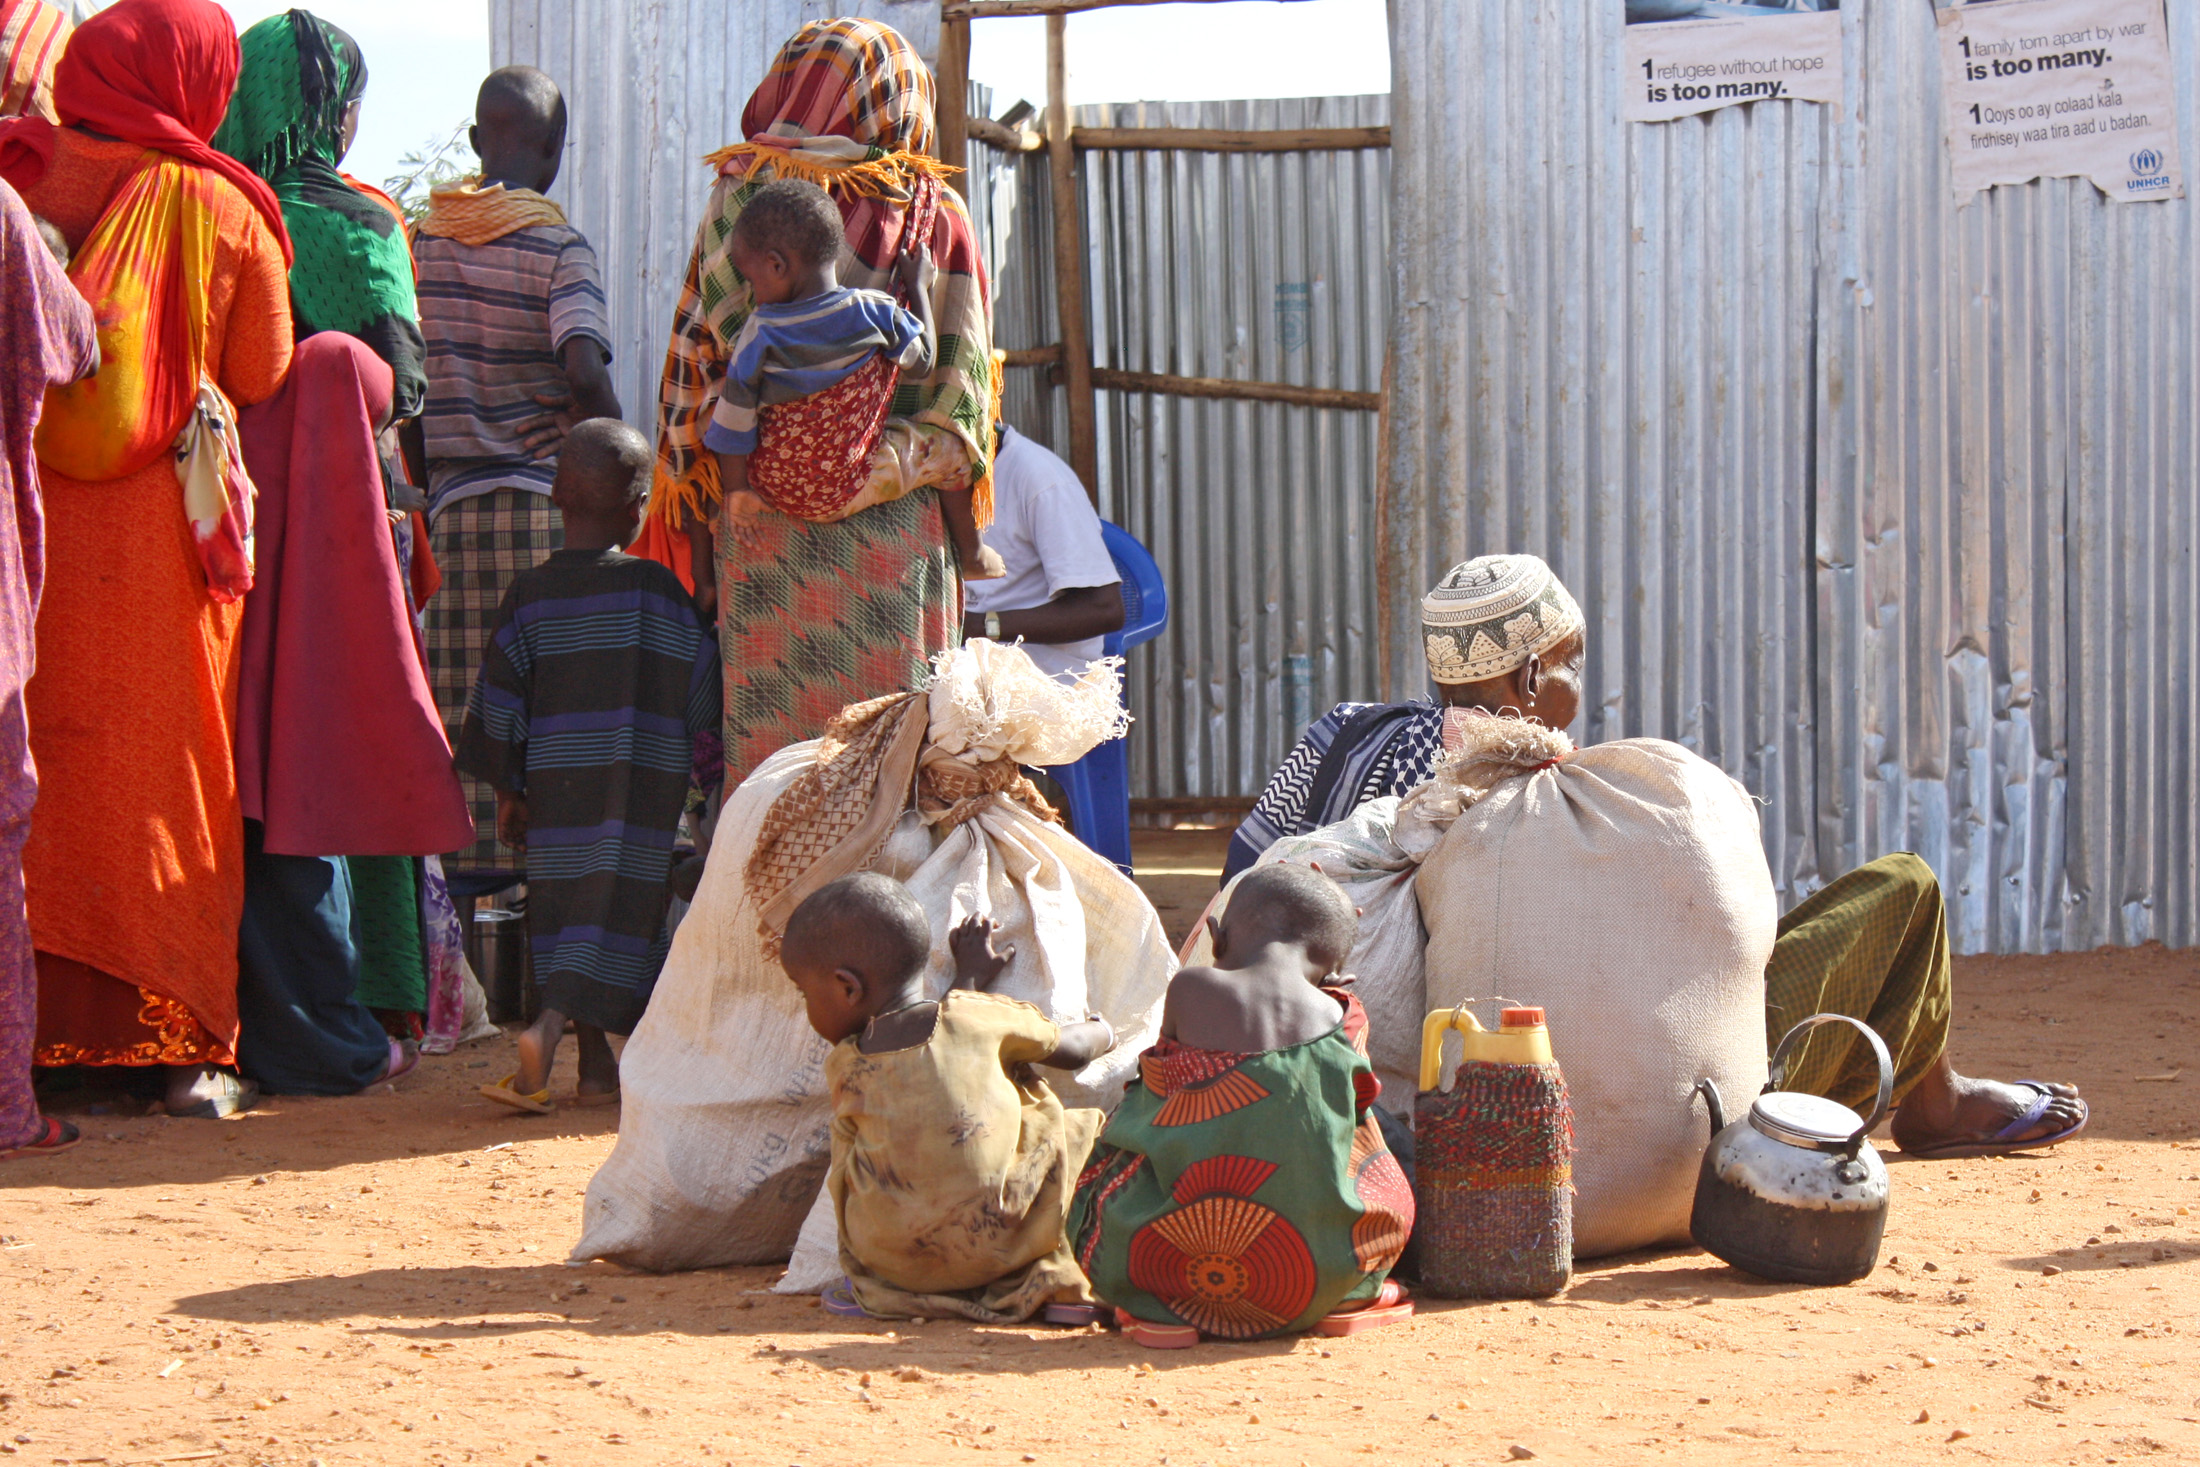 A year after the famine in 2011 Somali refugees are still arriving in the Dollo Ado refugee complex in Ethiopia's Somali region